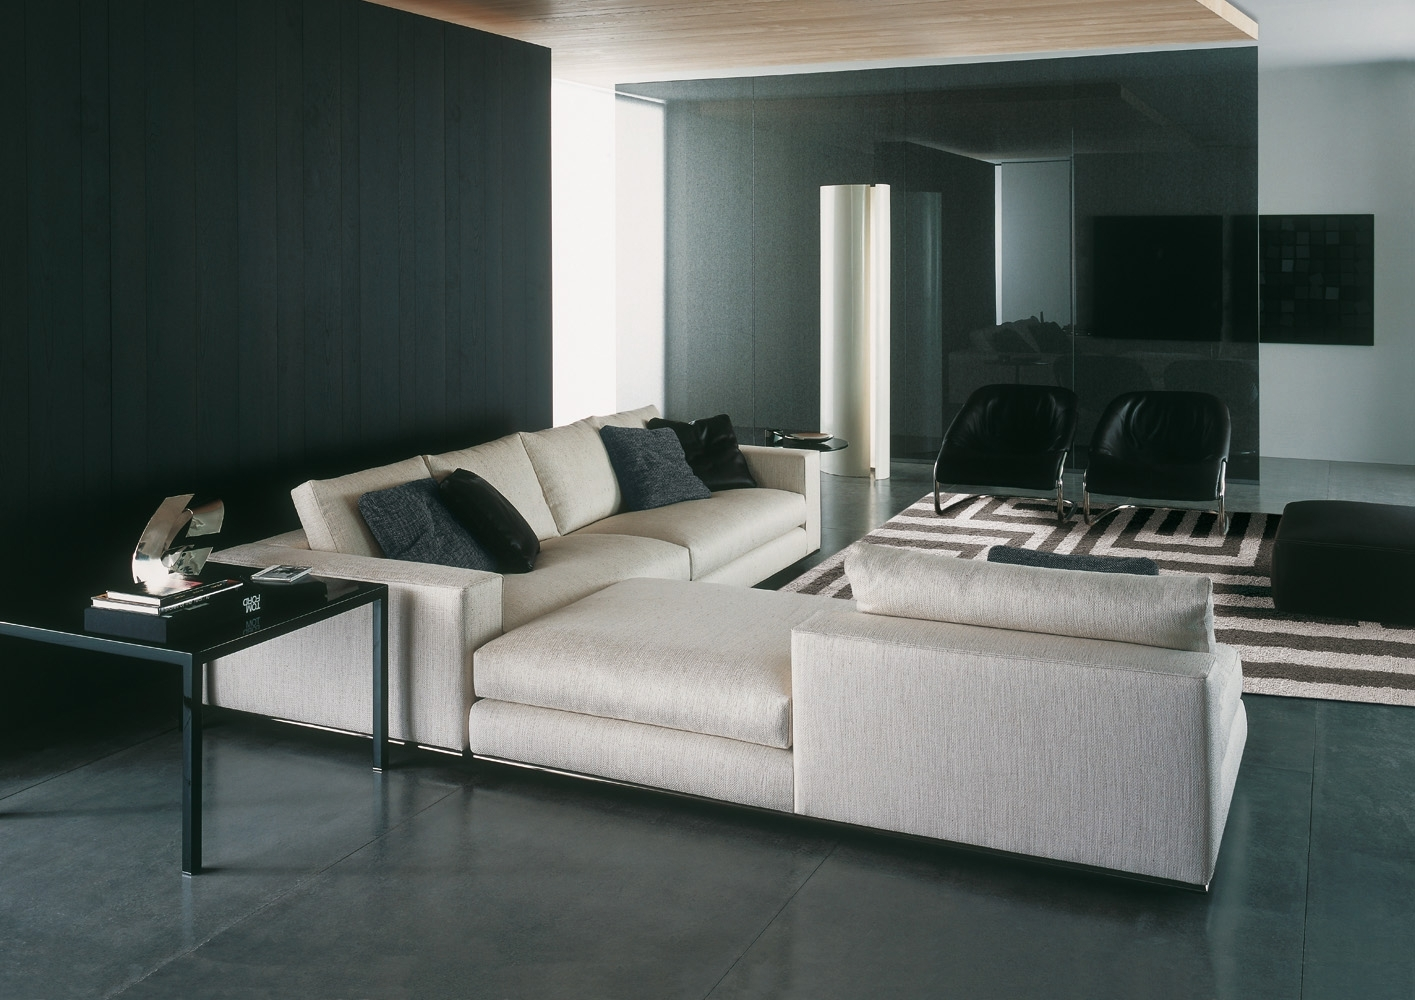 Hamilton Sofa | Designedrodolfo Dordoni, Minotti, Orange Skin Intended For Hamilton Sectional Sofas (View 3 of 10)